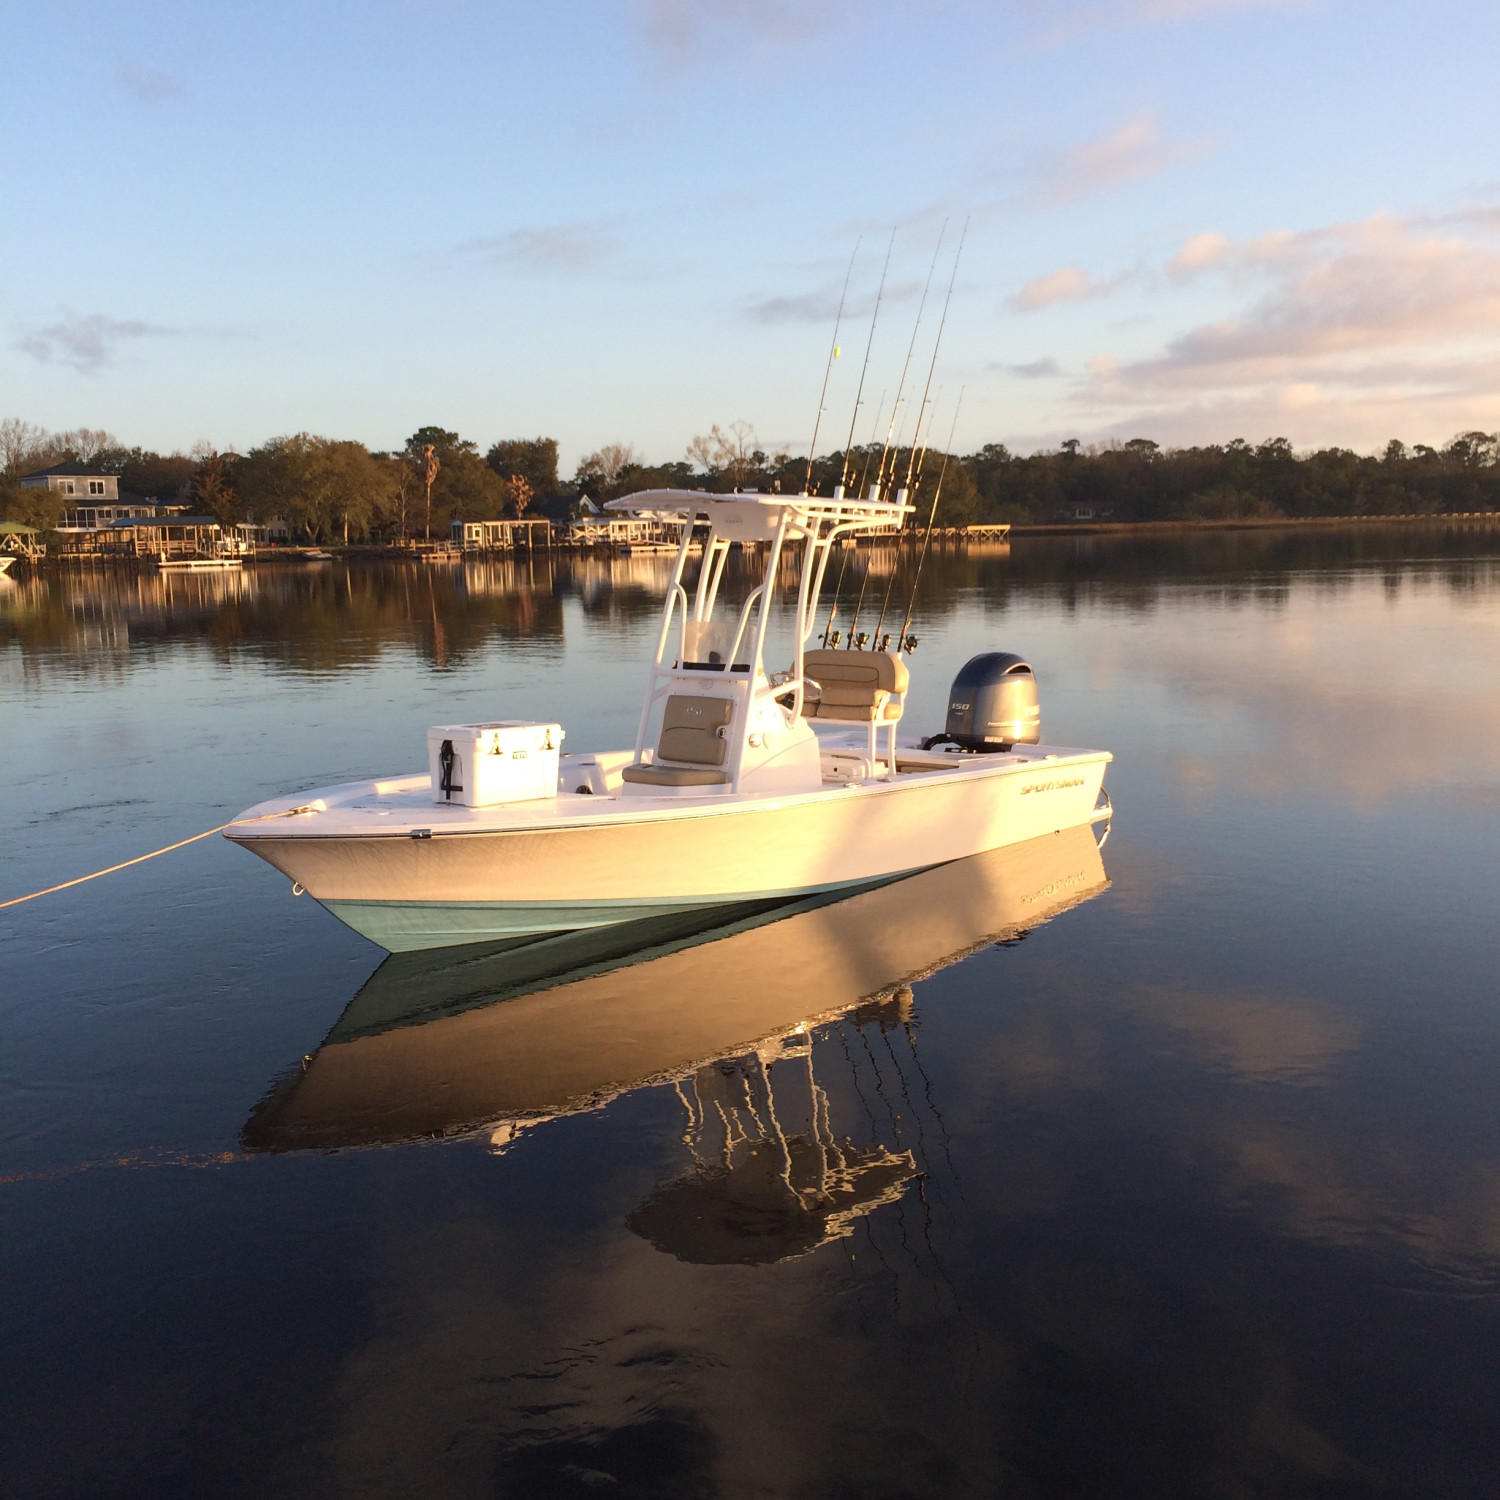 Title: Morning reflection - On board their Sportsman Masters 207 Bay Boat - Location: Charleston, SC. Participating in the Photo Contest #SportsmanMarch2018